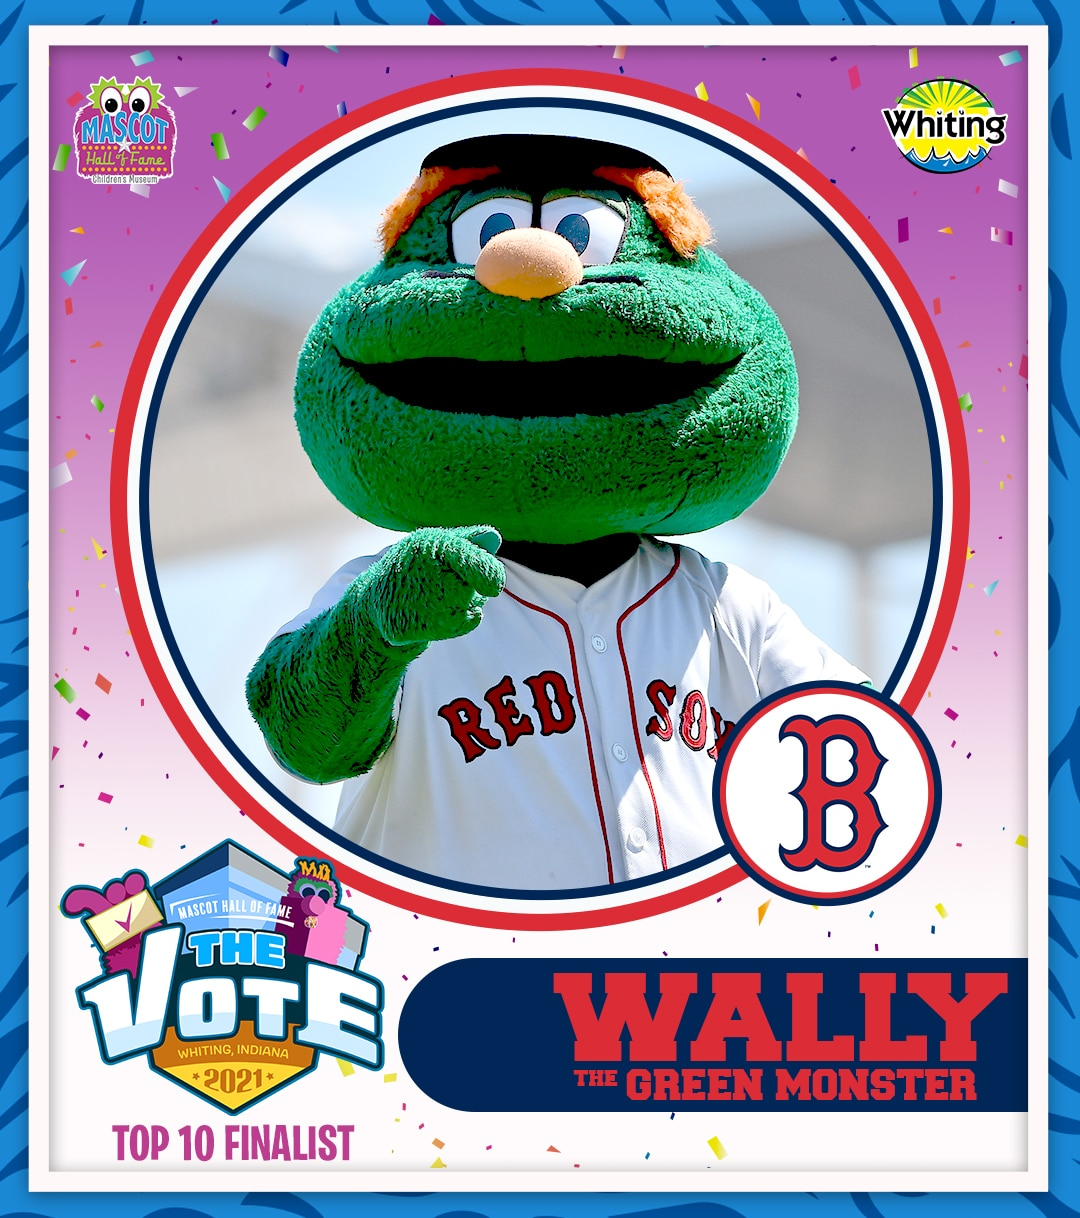 Wally the Green Monster photo